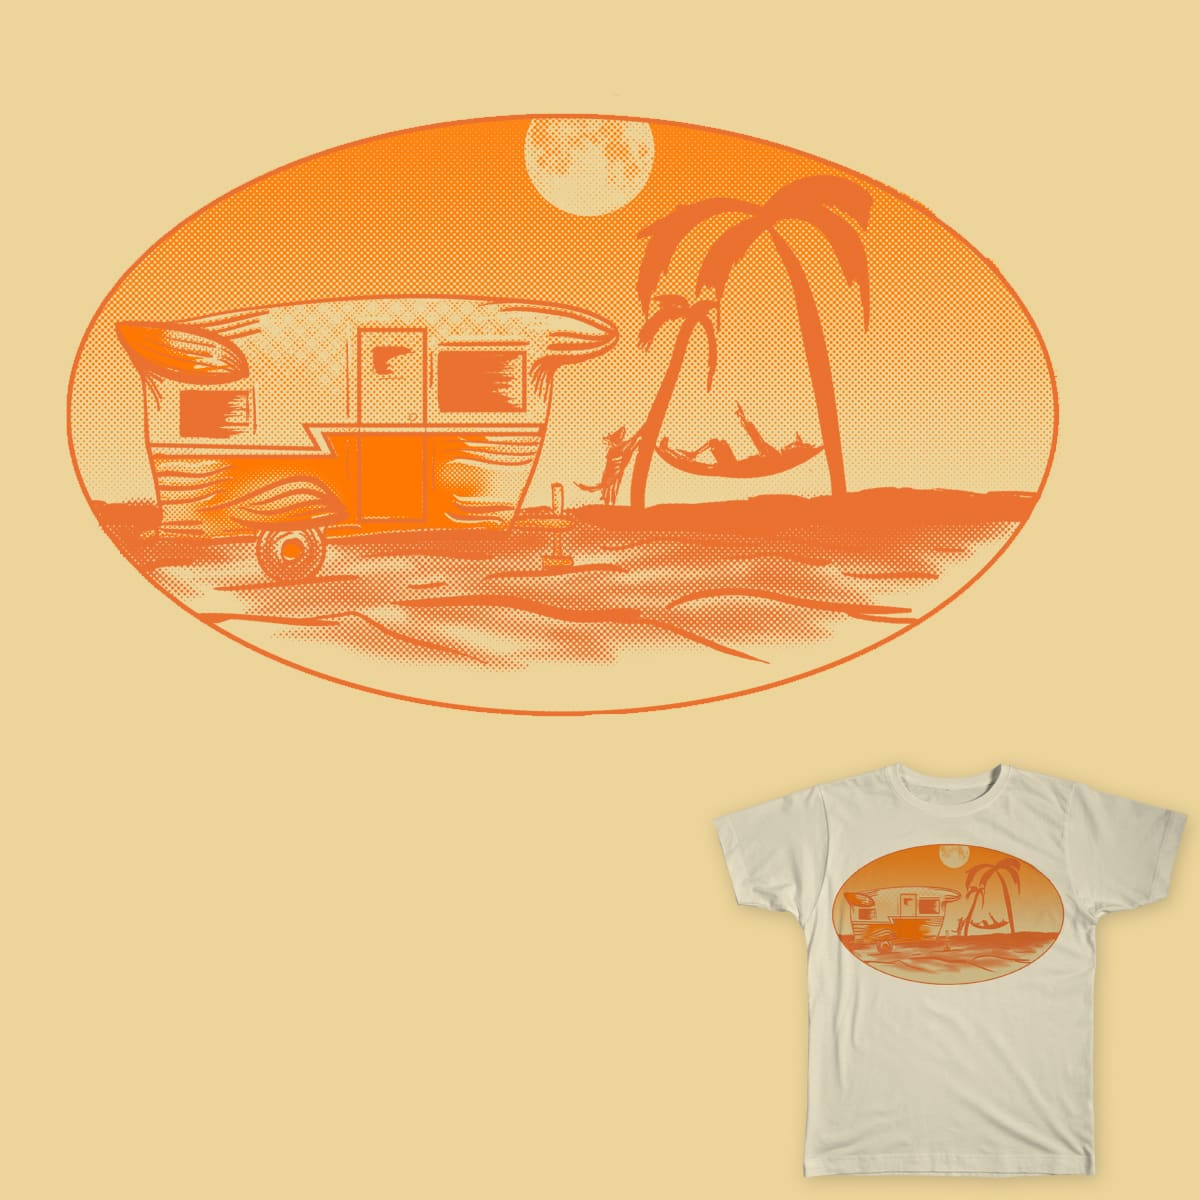 Hammock, dog, and retirement vehicle. by CycoblastArt on Threadless